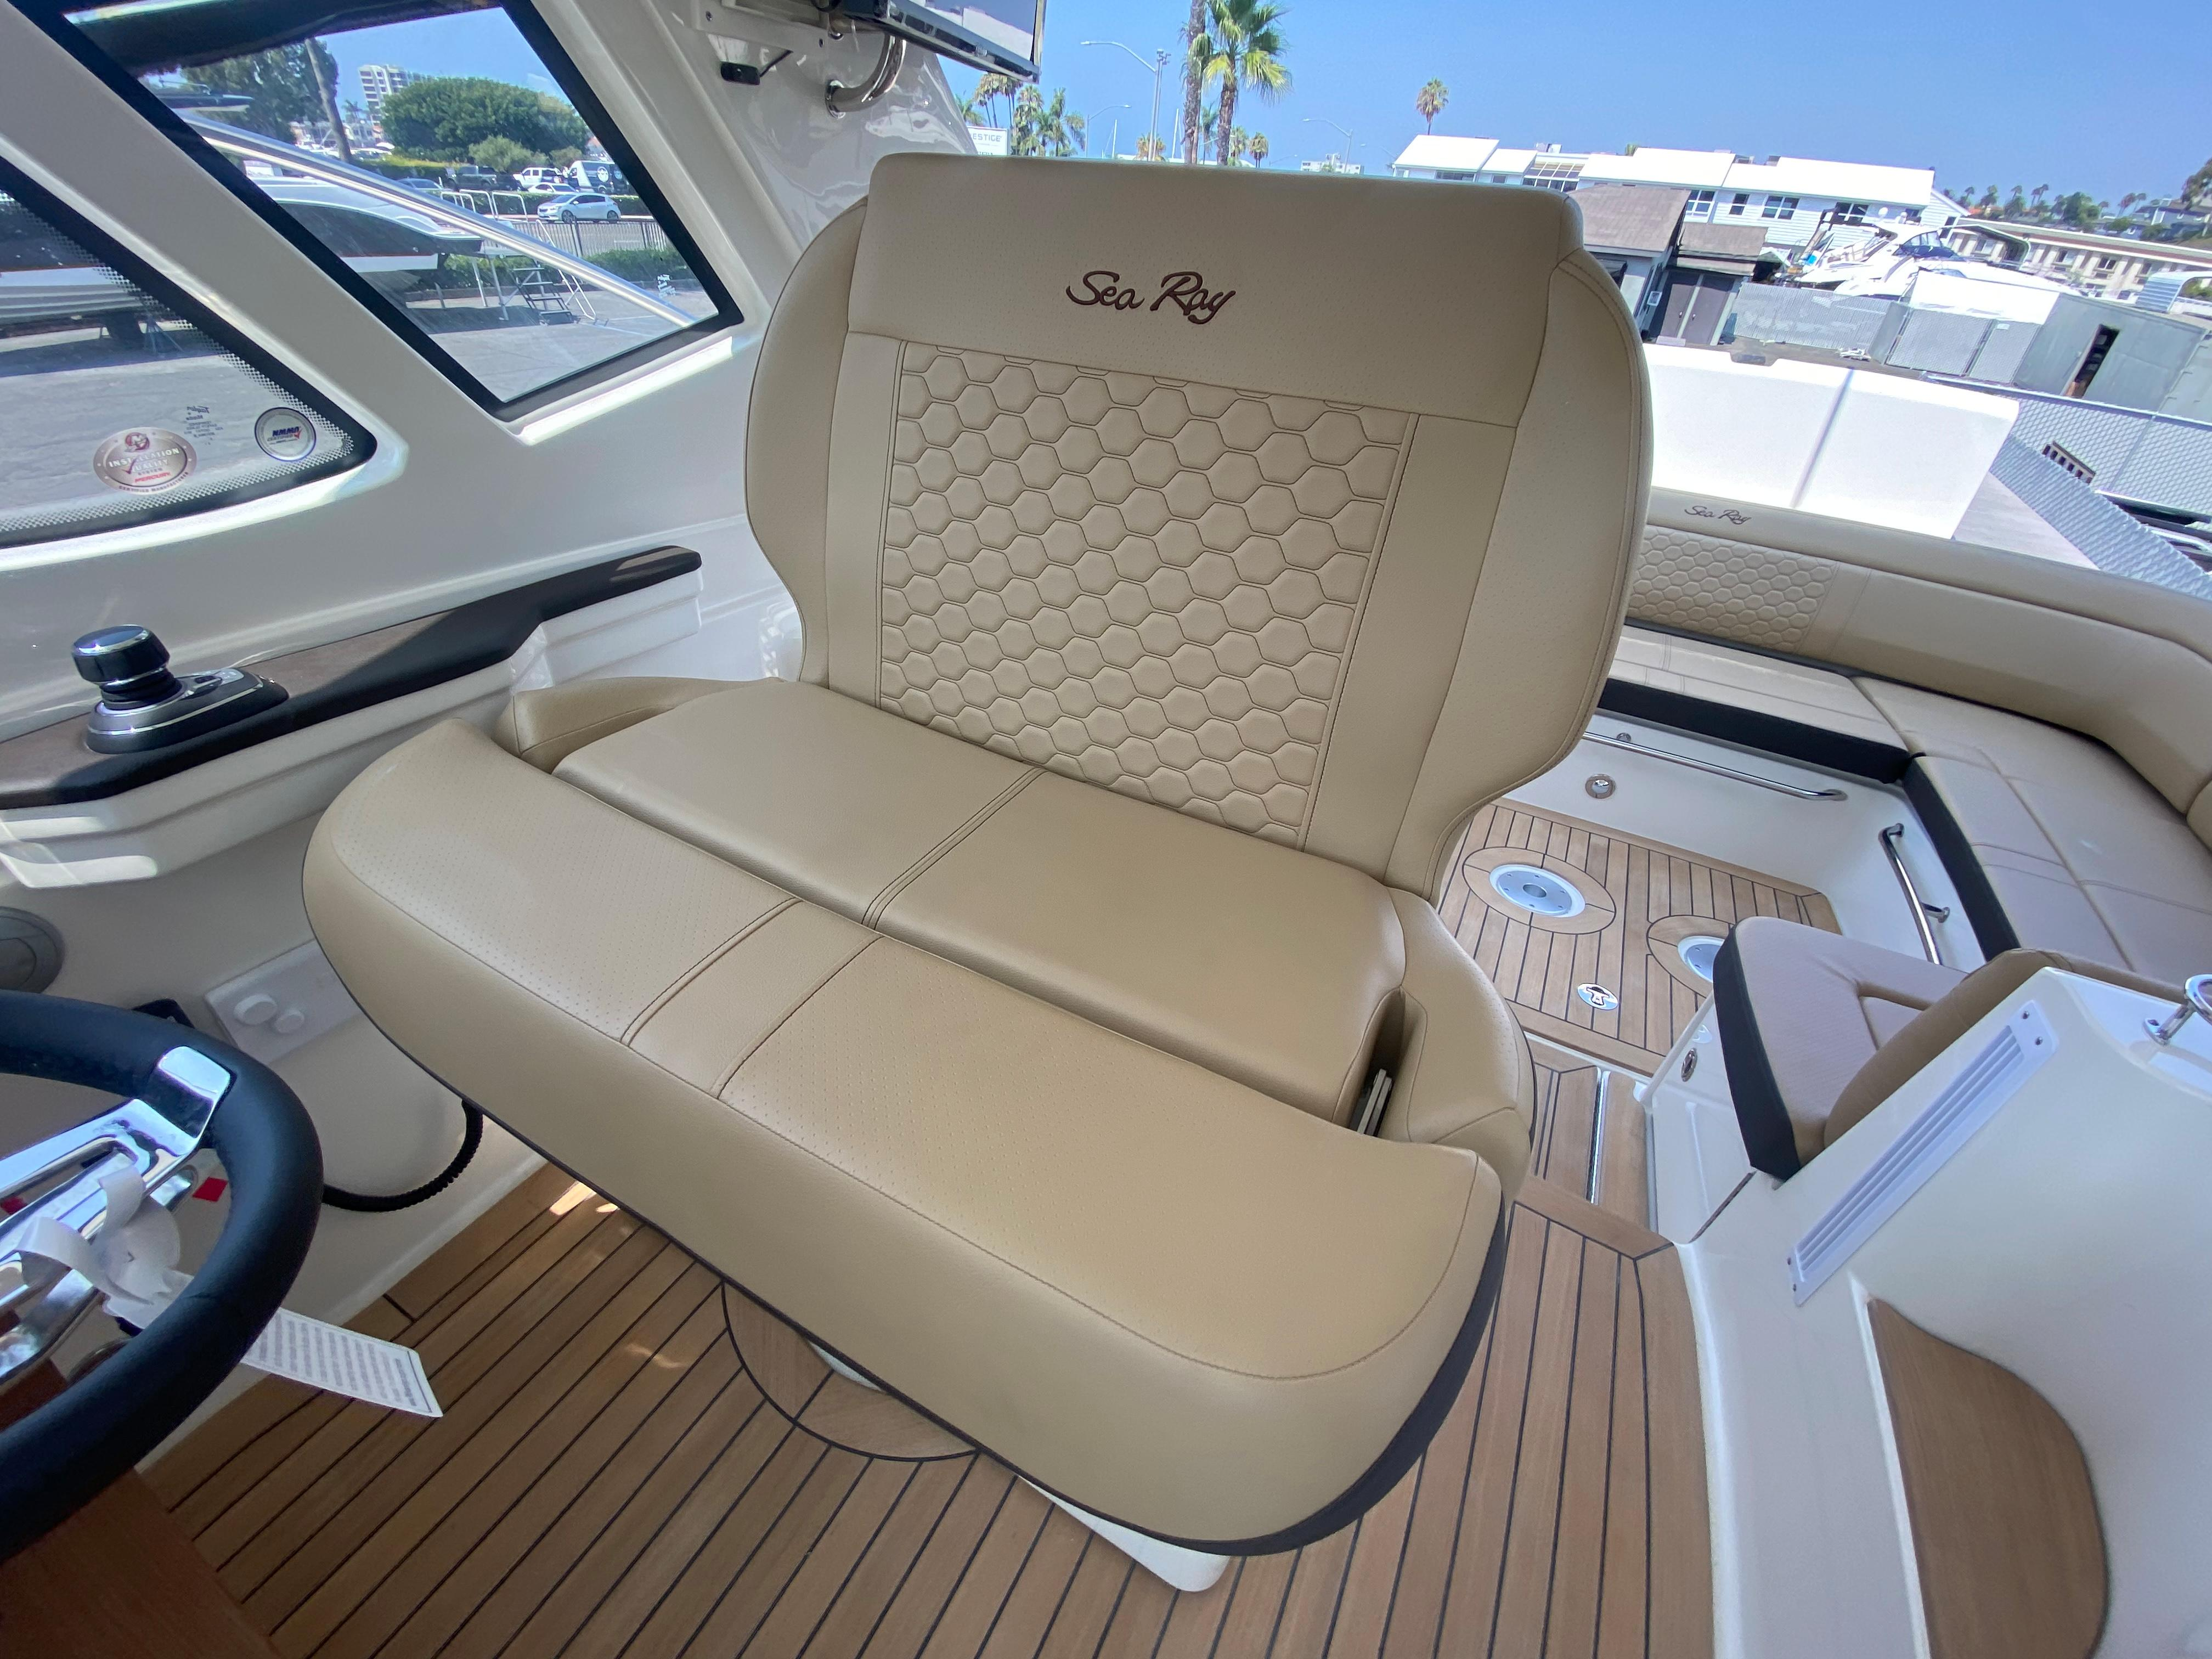 2021 Sea Ray Sundancer 350 Coupe #S1618C inventory image at Sun Country Coastal in Newport Beach